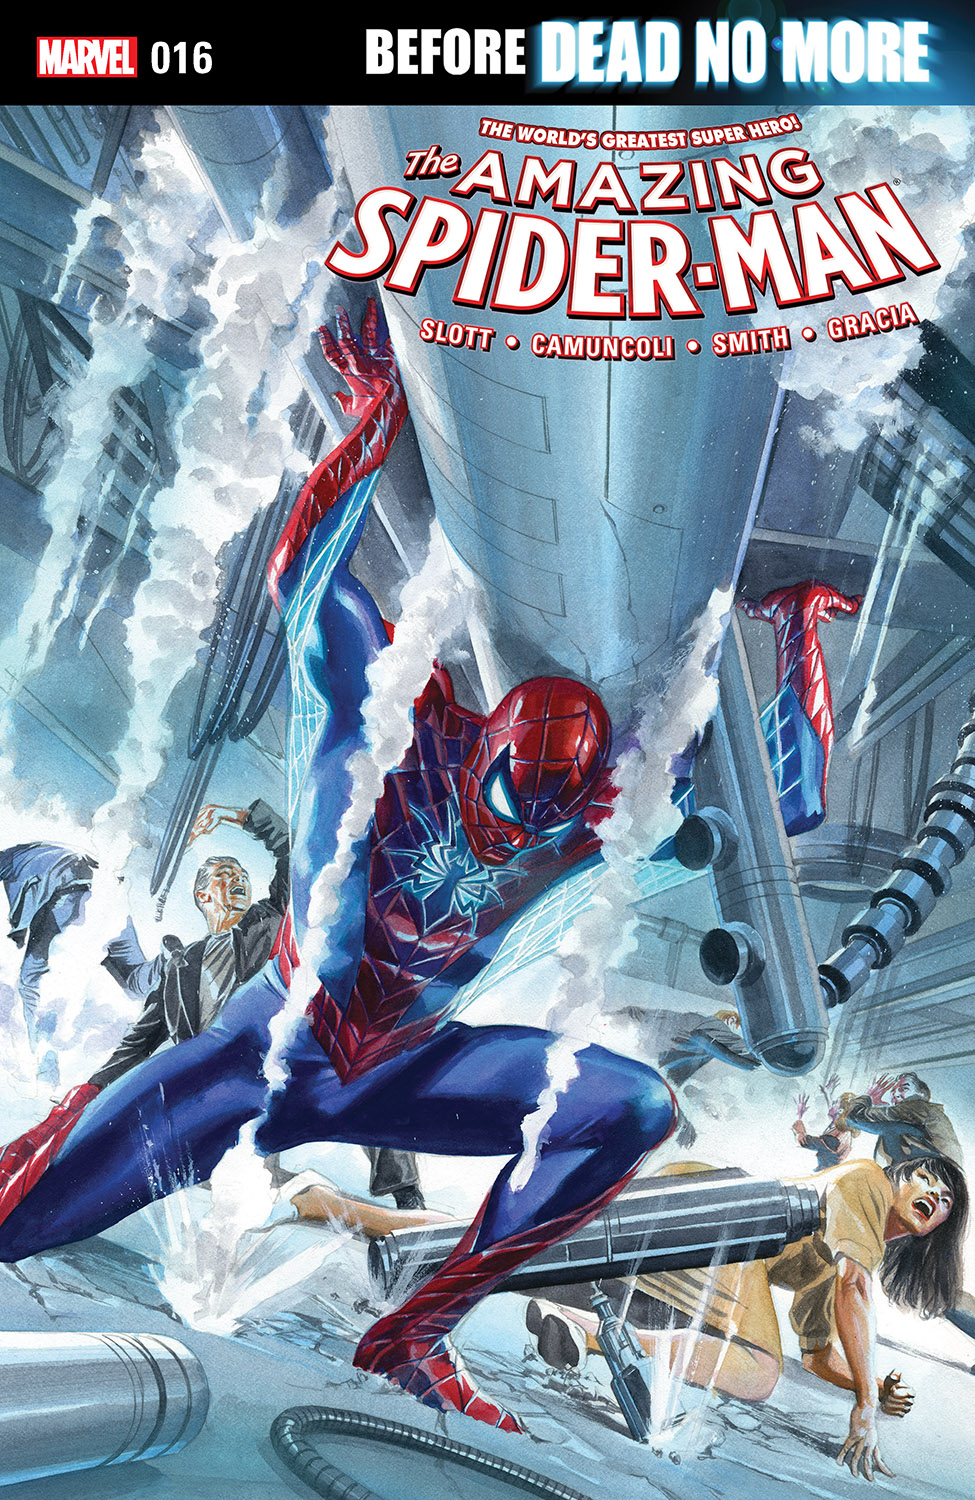 The Amazing Spider-Man (2015) #16